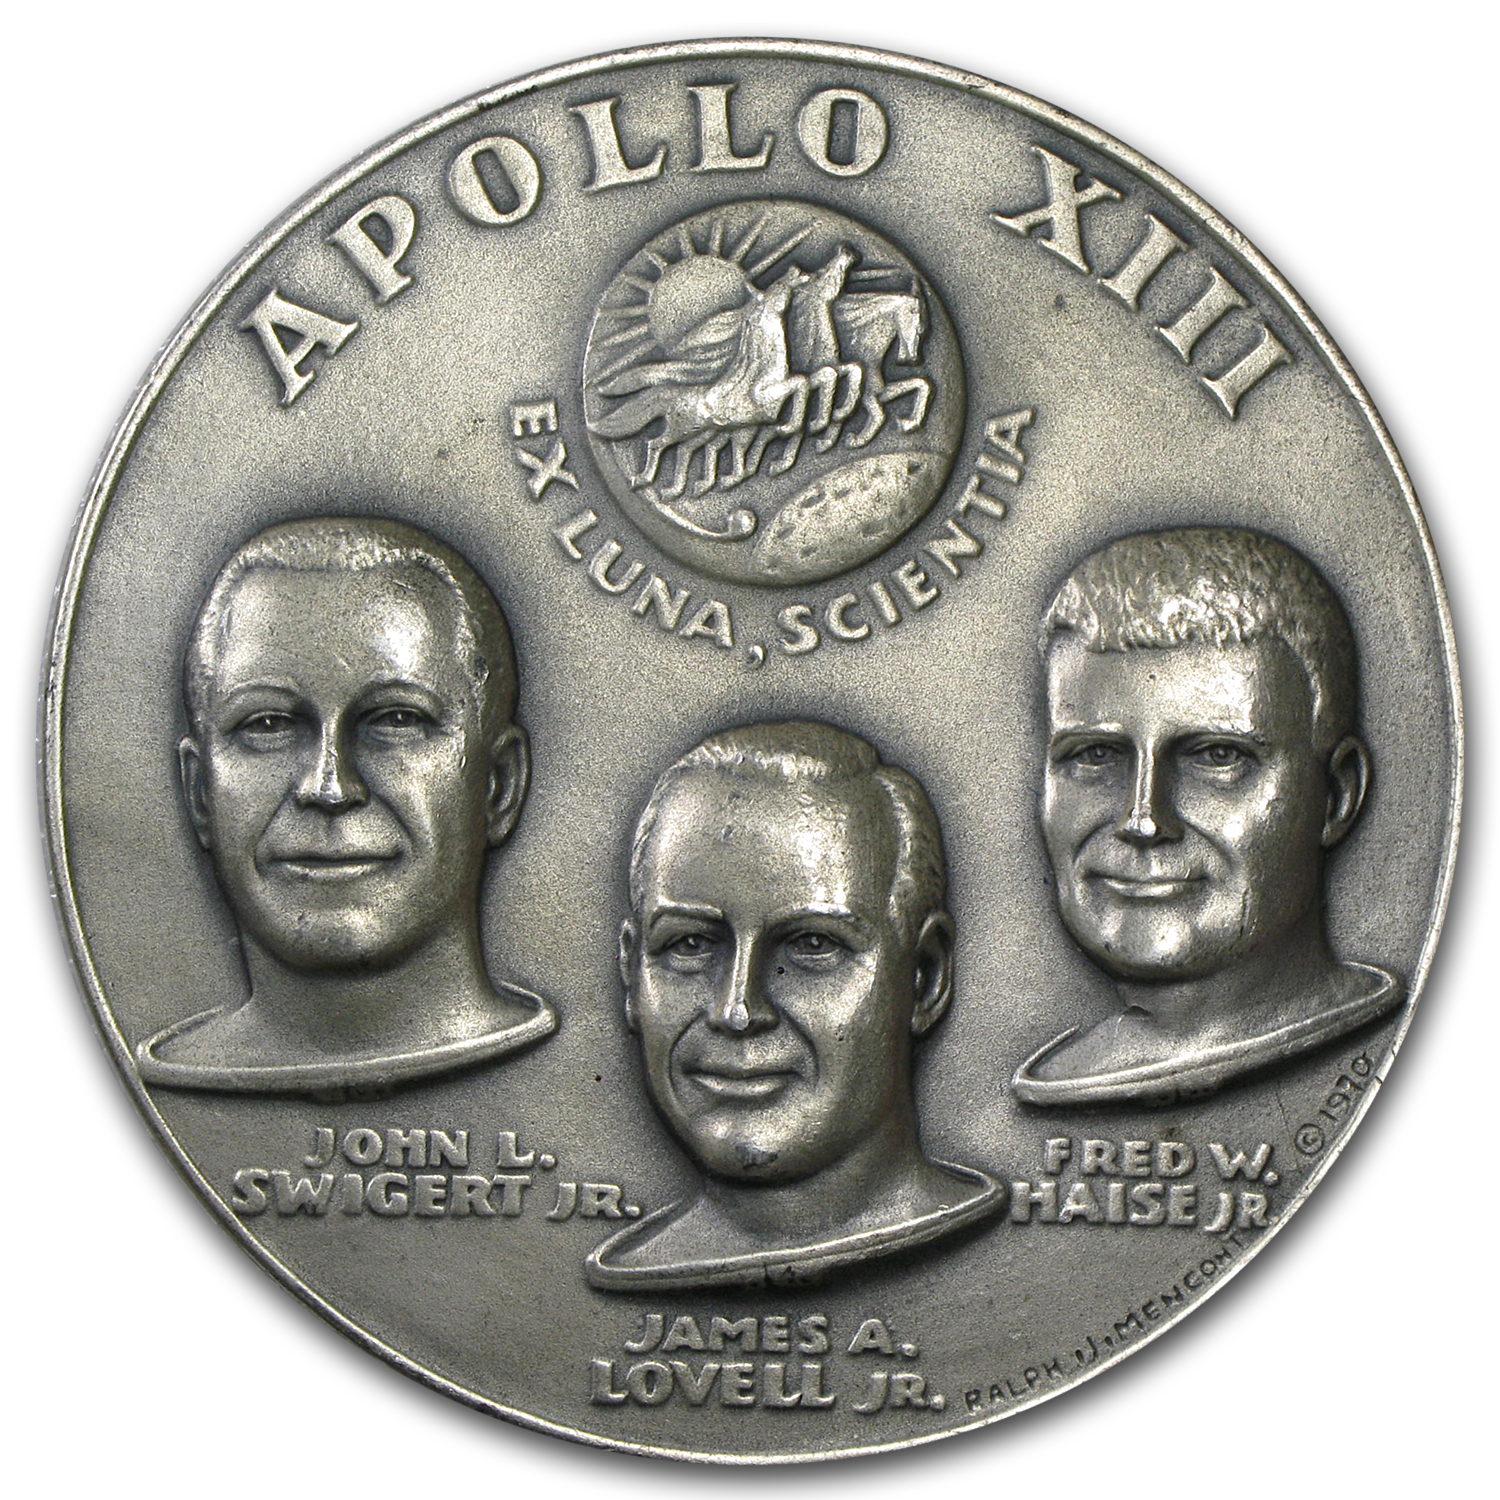 4.835 oz Silver Rounds - APOLLO 13